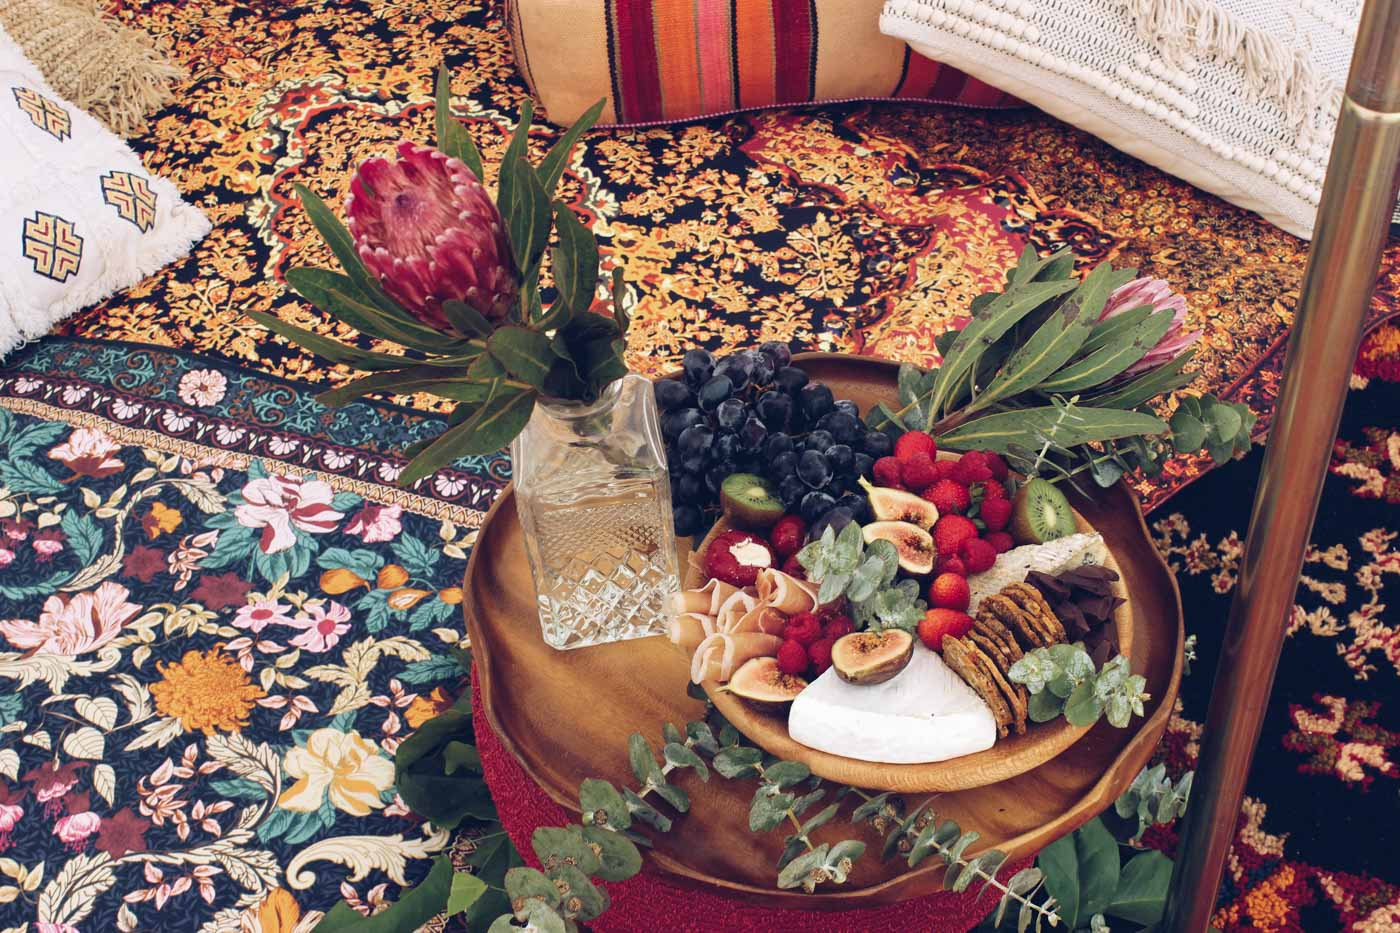 the_Collection_co_grazing_table_cairns_weddings_catering_grazing_platter_hire_pop_up_picnic_bell_tent_event_hire_styling-14-2.jpg